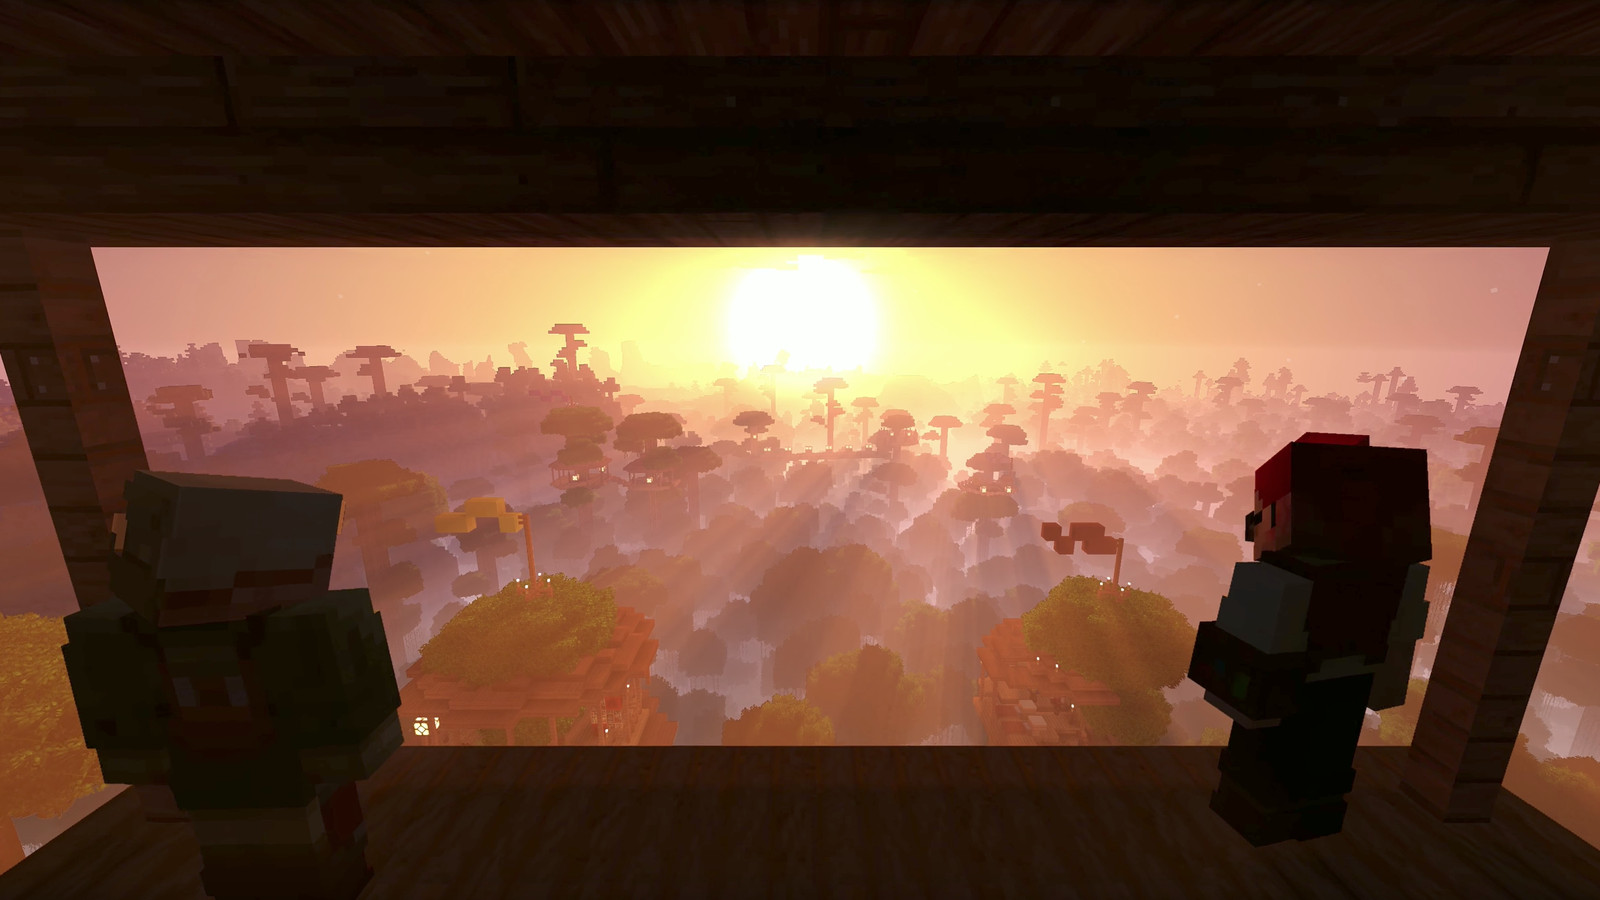 Minecraft is getting 'Super Duper' 4K graphics and cross